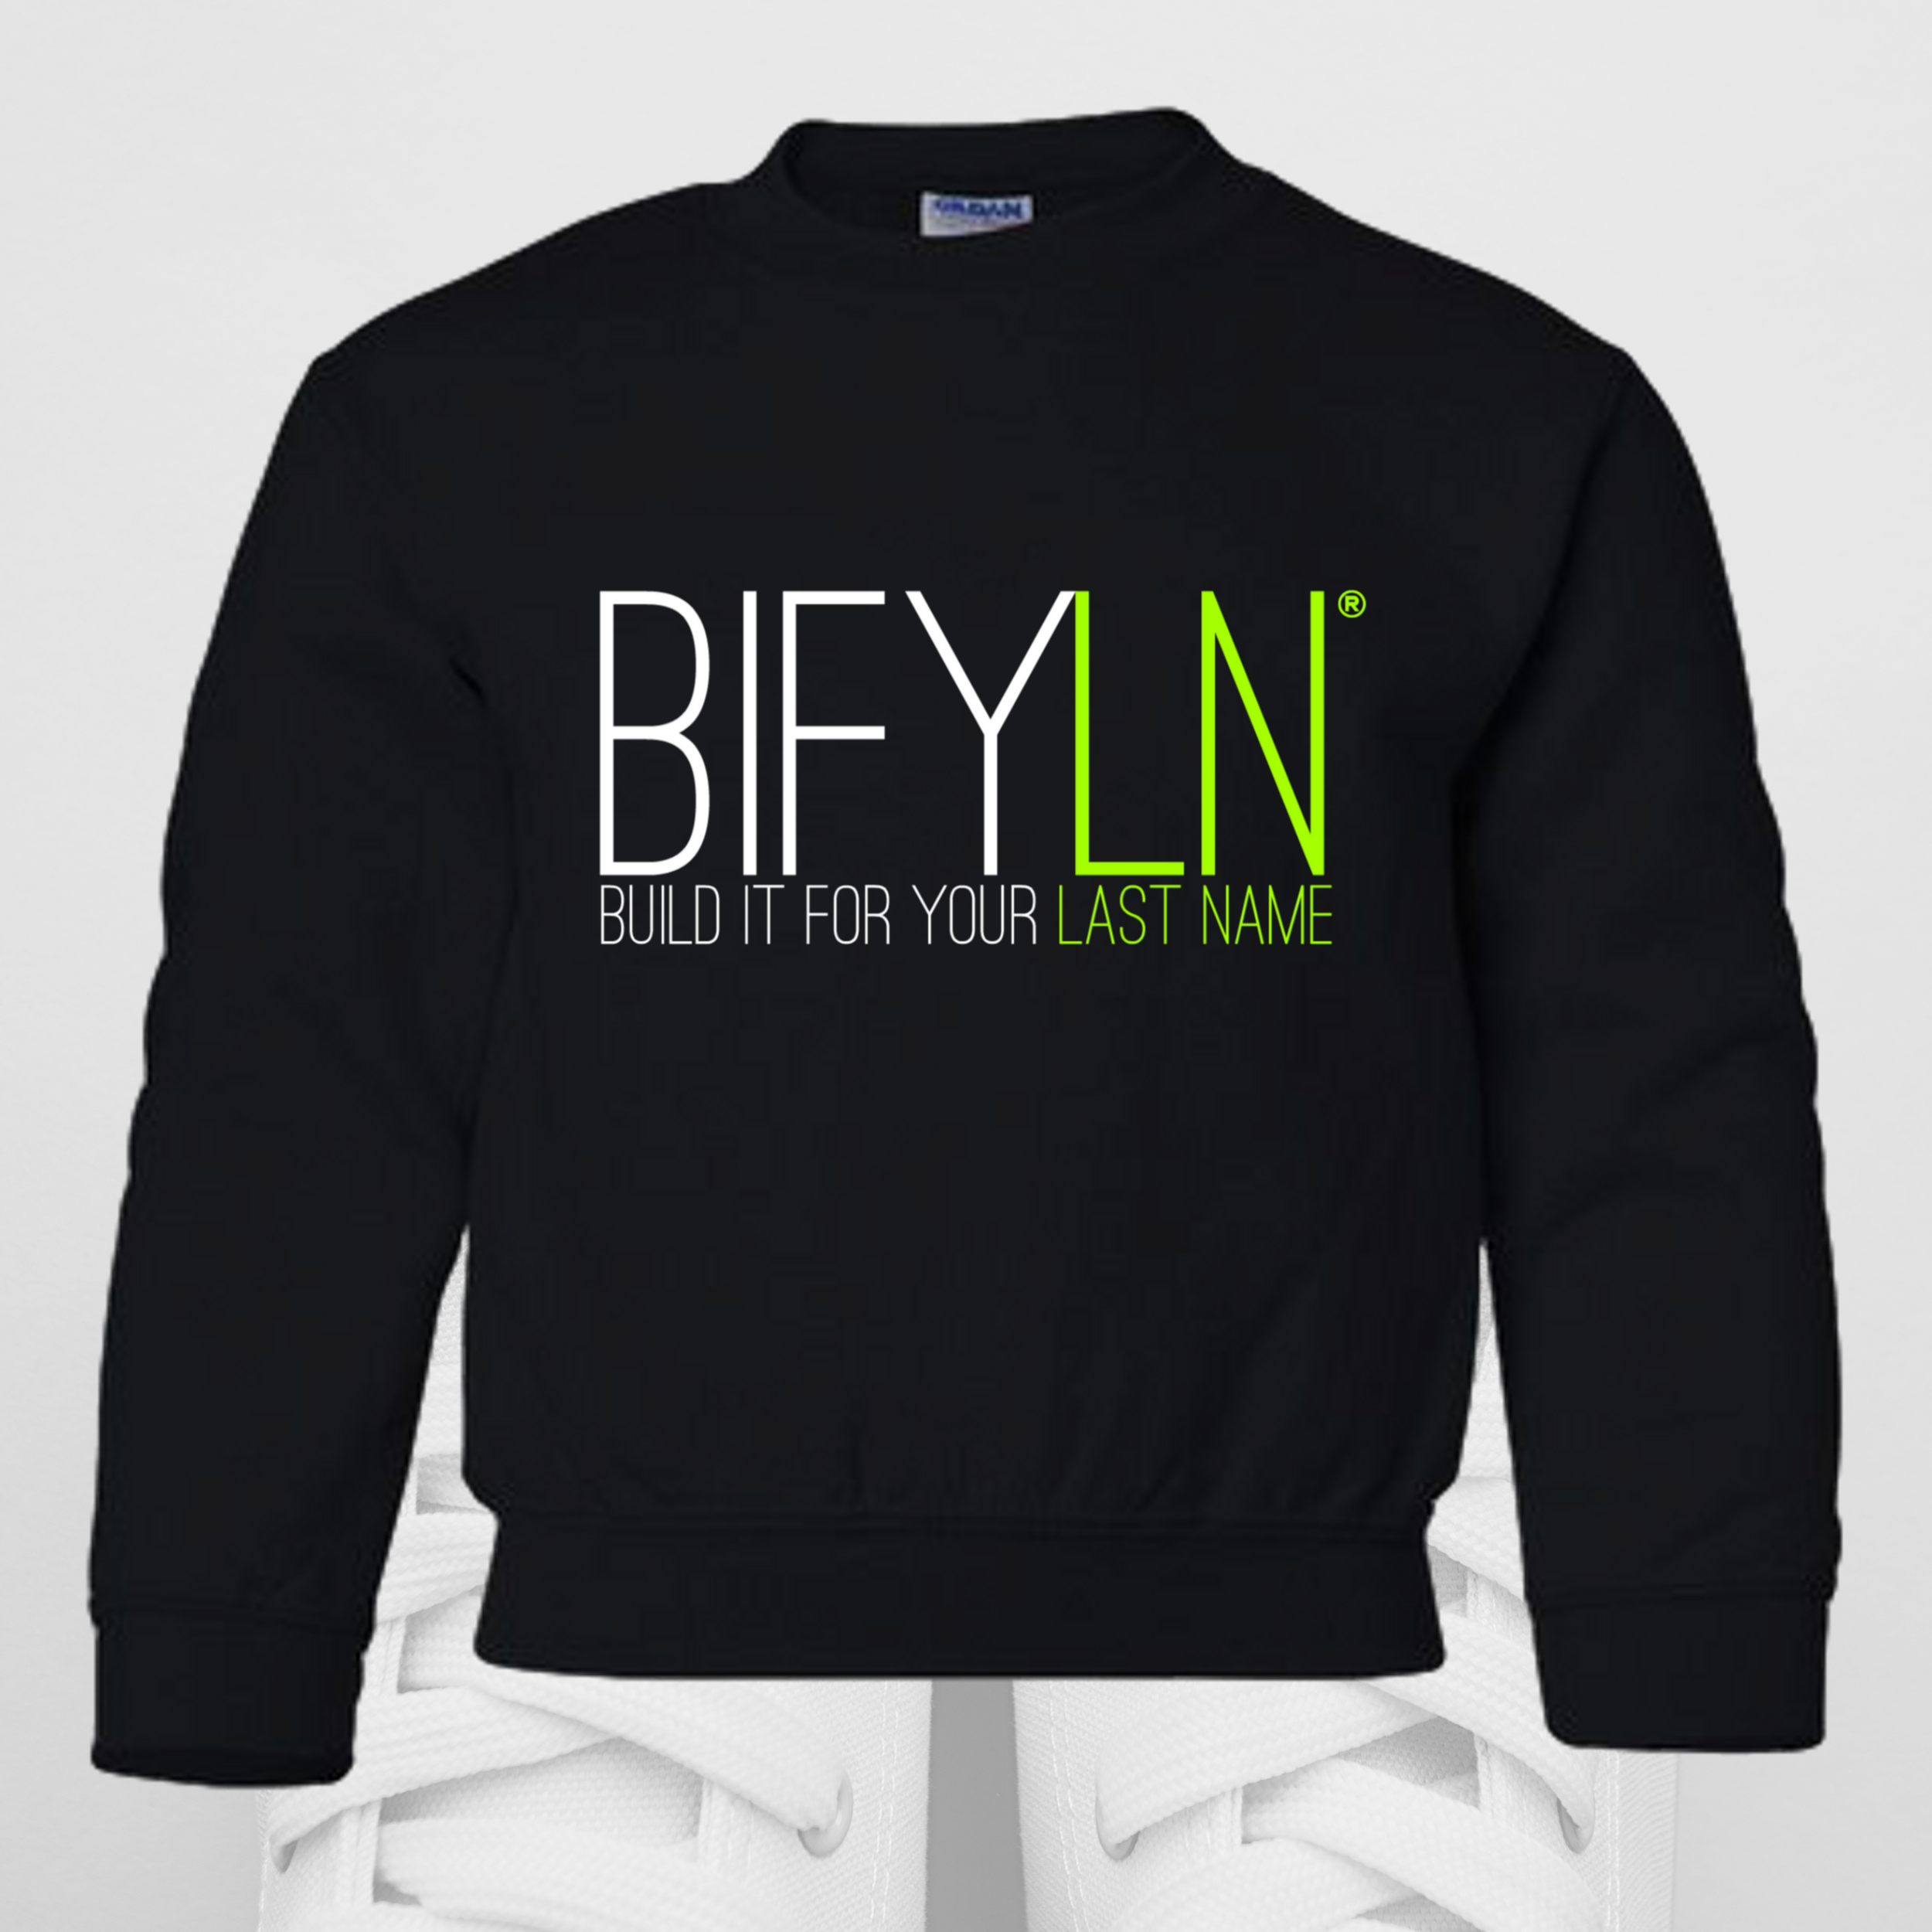 BIFYLN YOUTH SWEATSHIRT